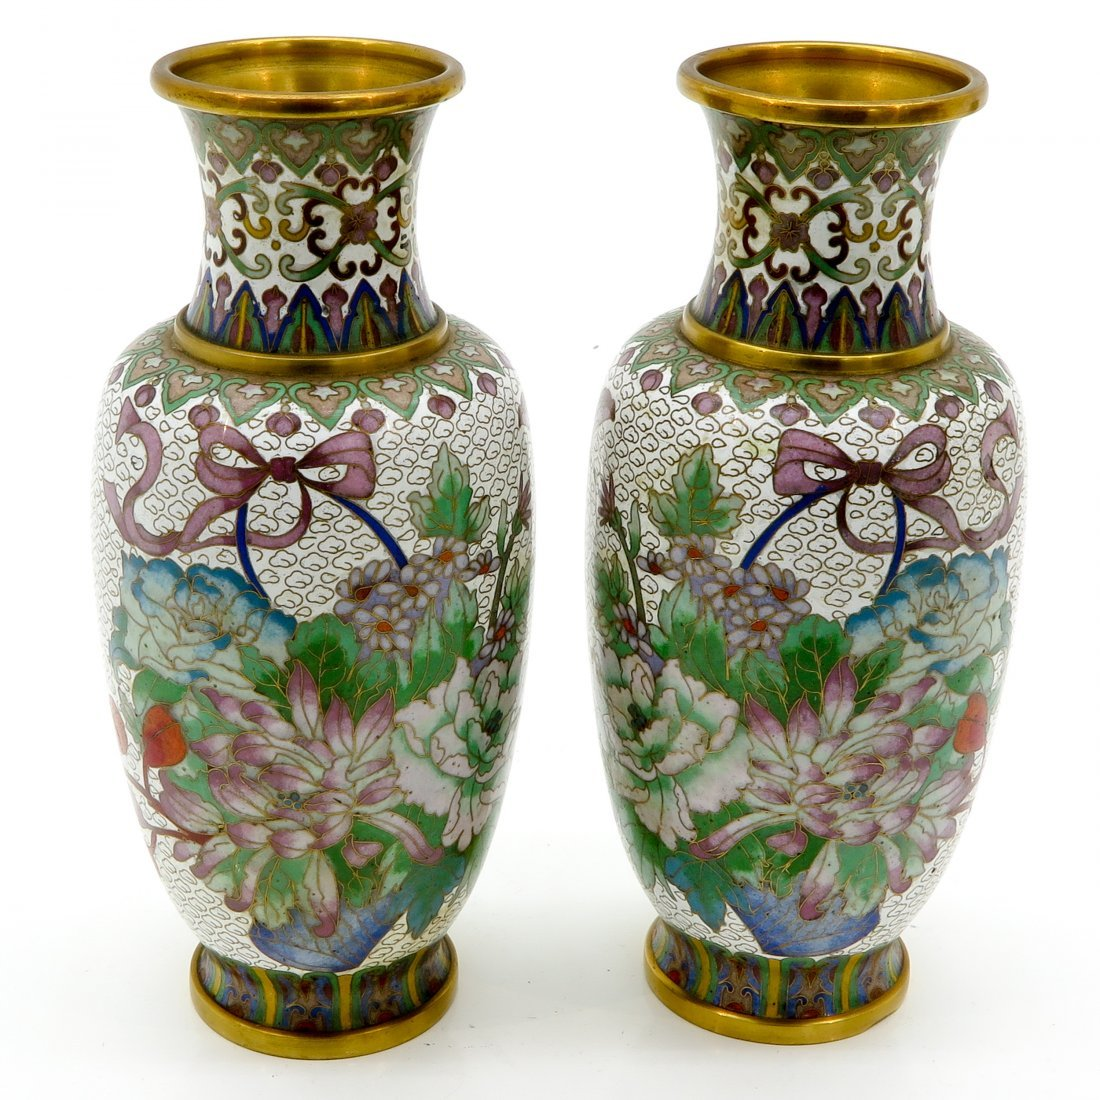 Lot of 2 Cloisonné Vases